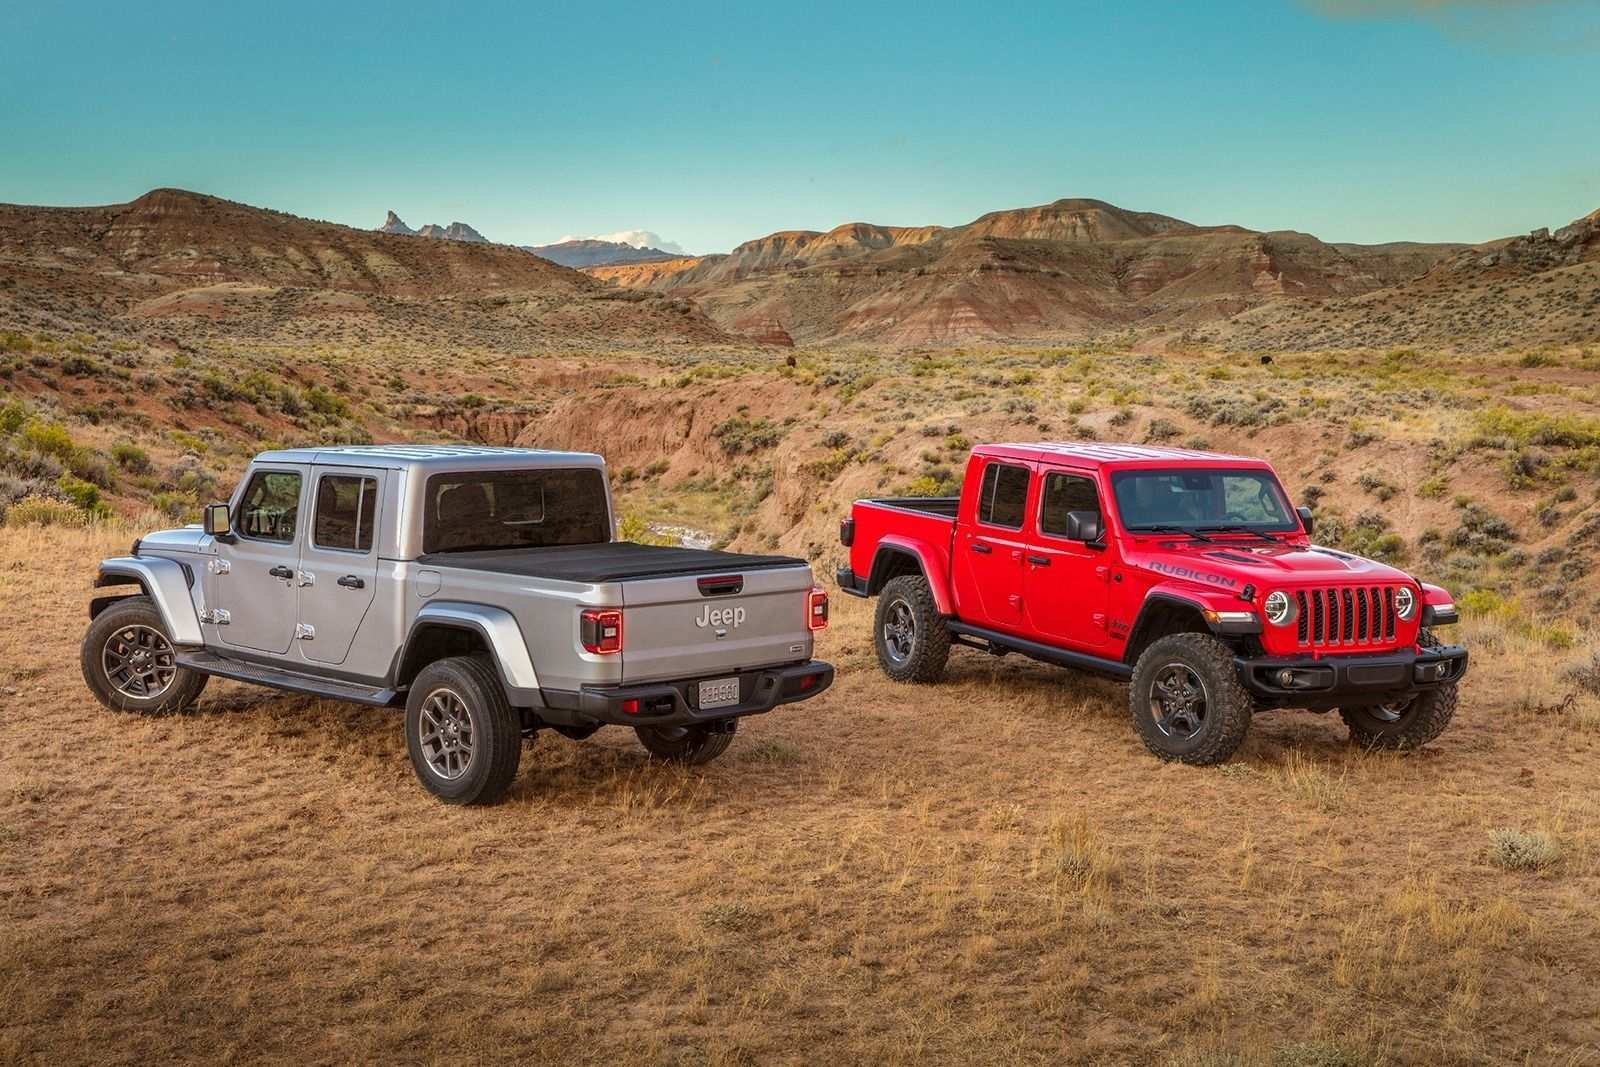 32 A Jeep Pickup 2020 Msrp Price